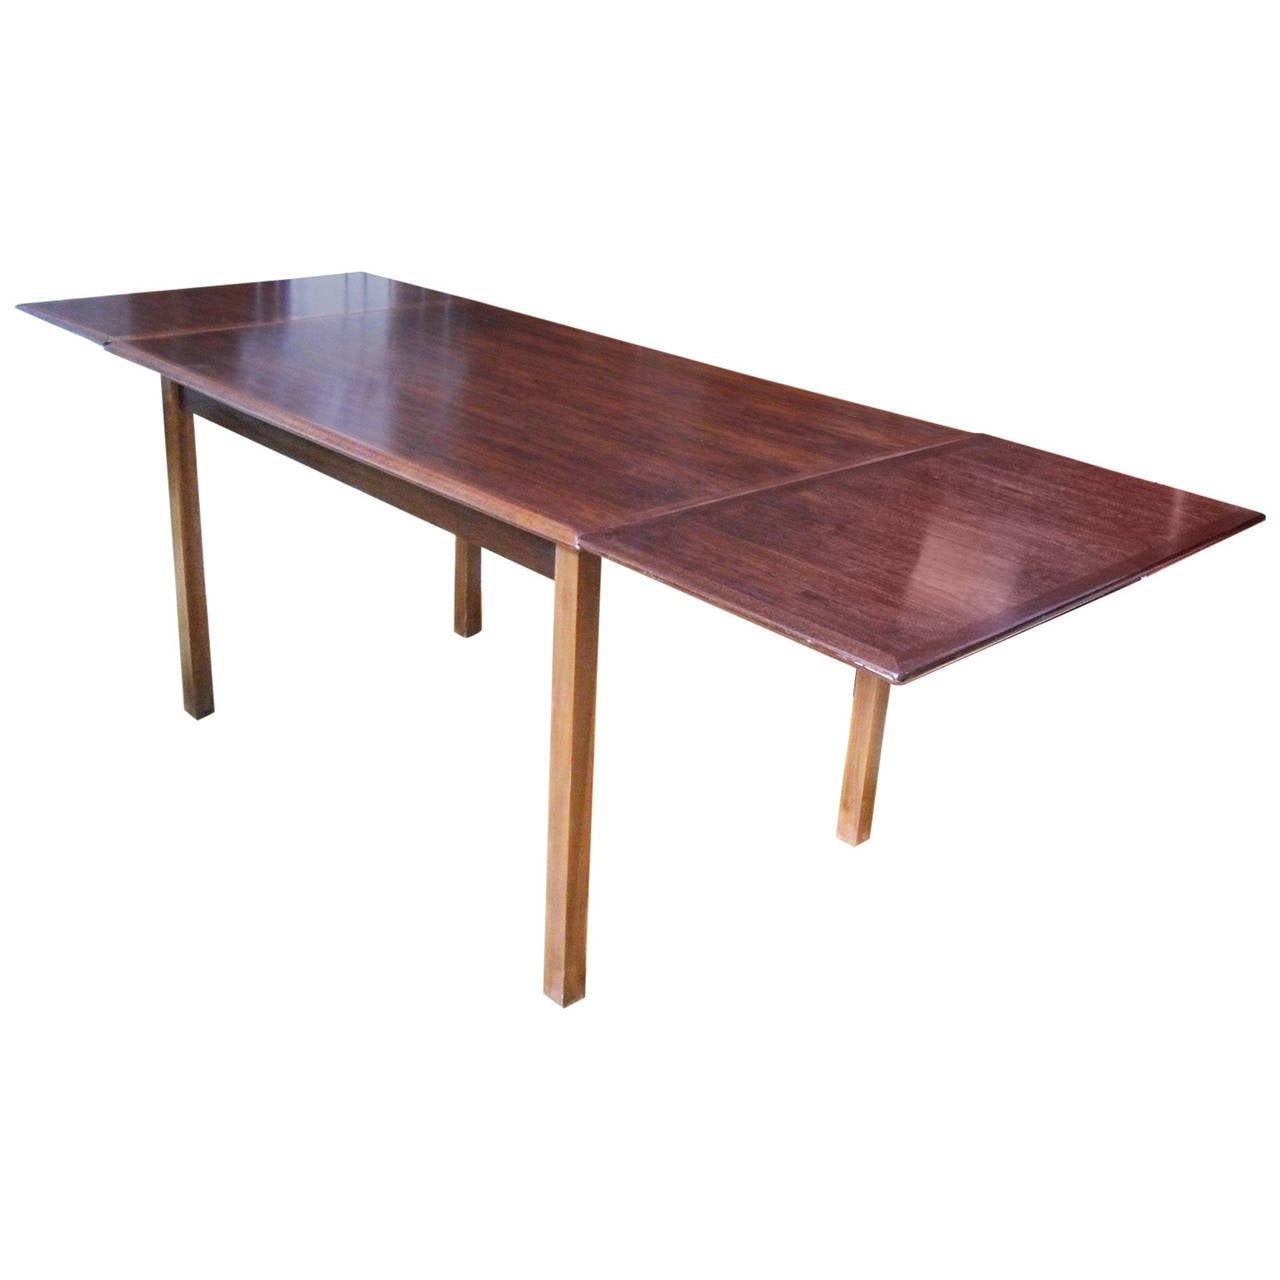 Mid century modern rosewood extendable dining table at 1stdibs for Mid century modern dining table